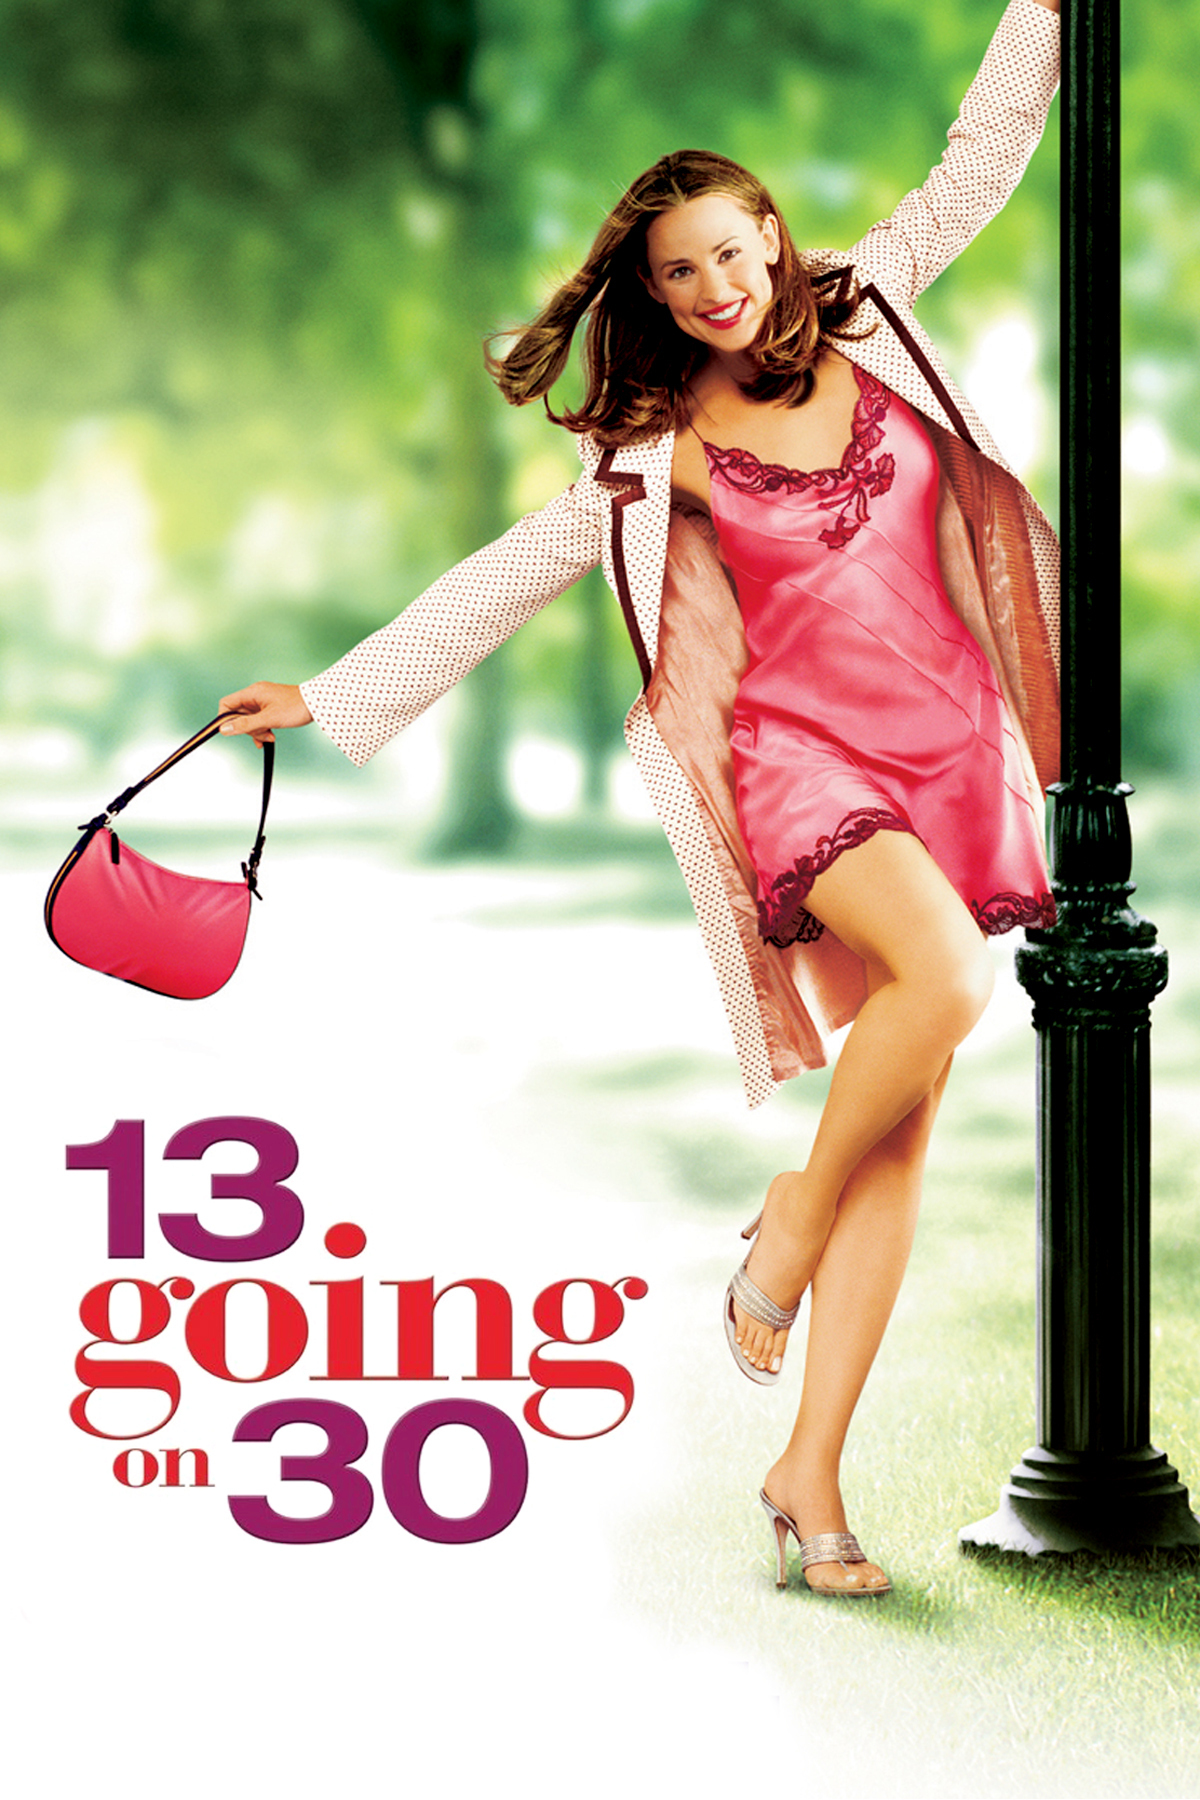 13 Going on 30 Musical Aiming for Broadway